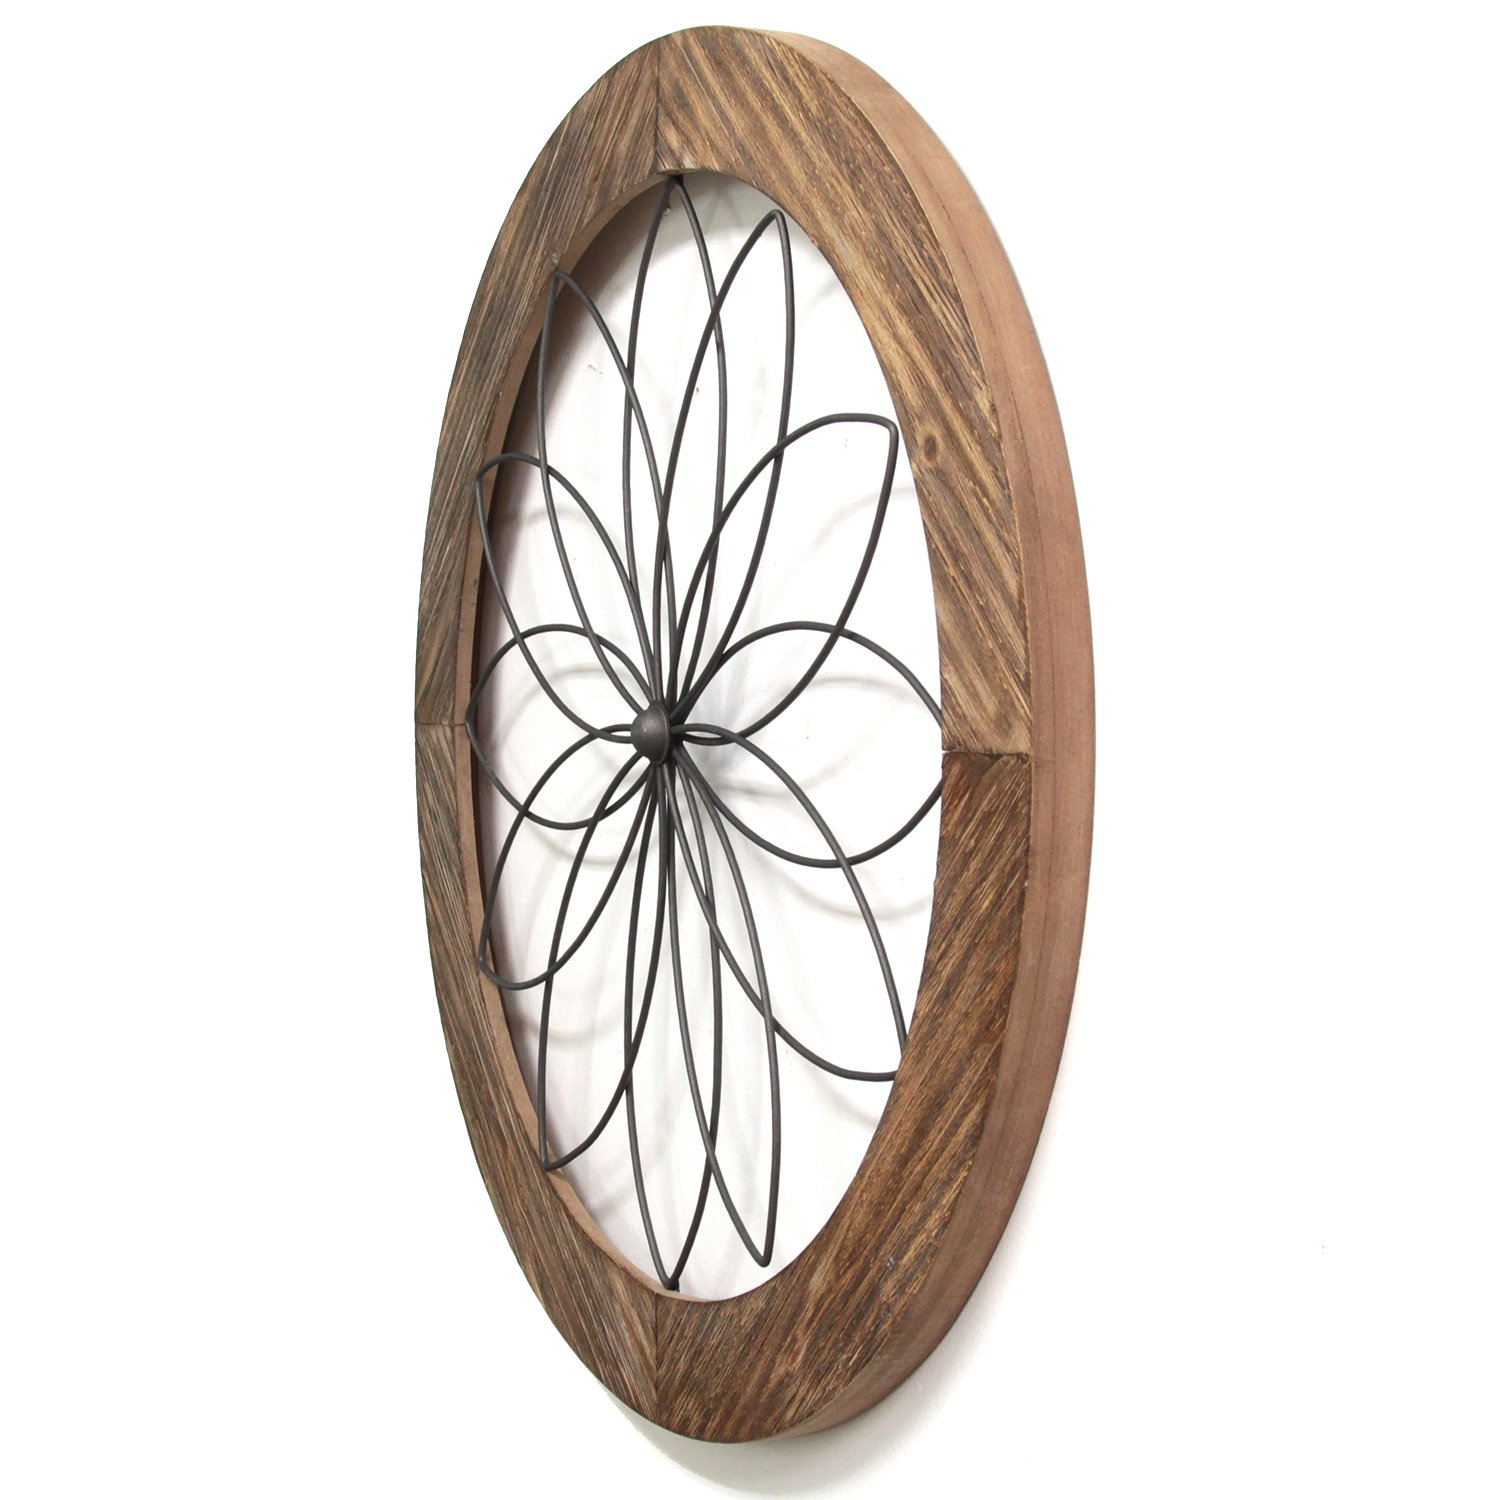 Stratton Home Decor S11570 Round Metal Natural Wood ...